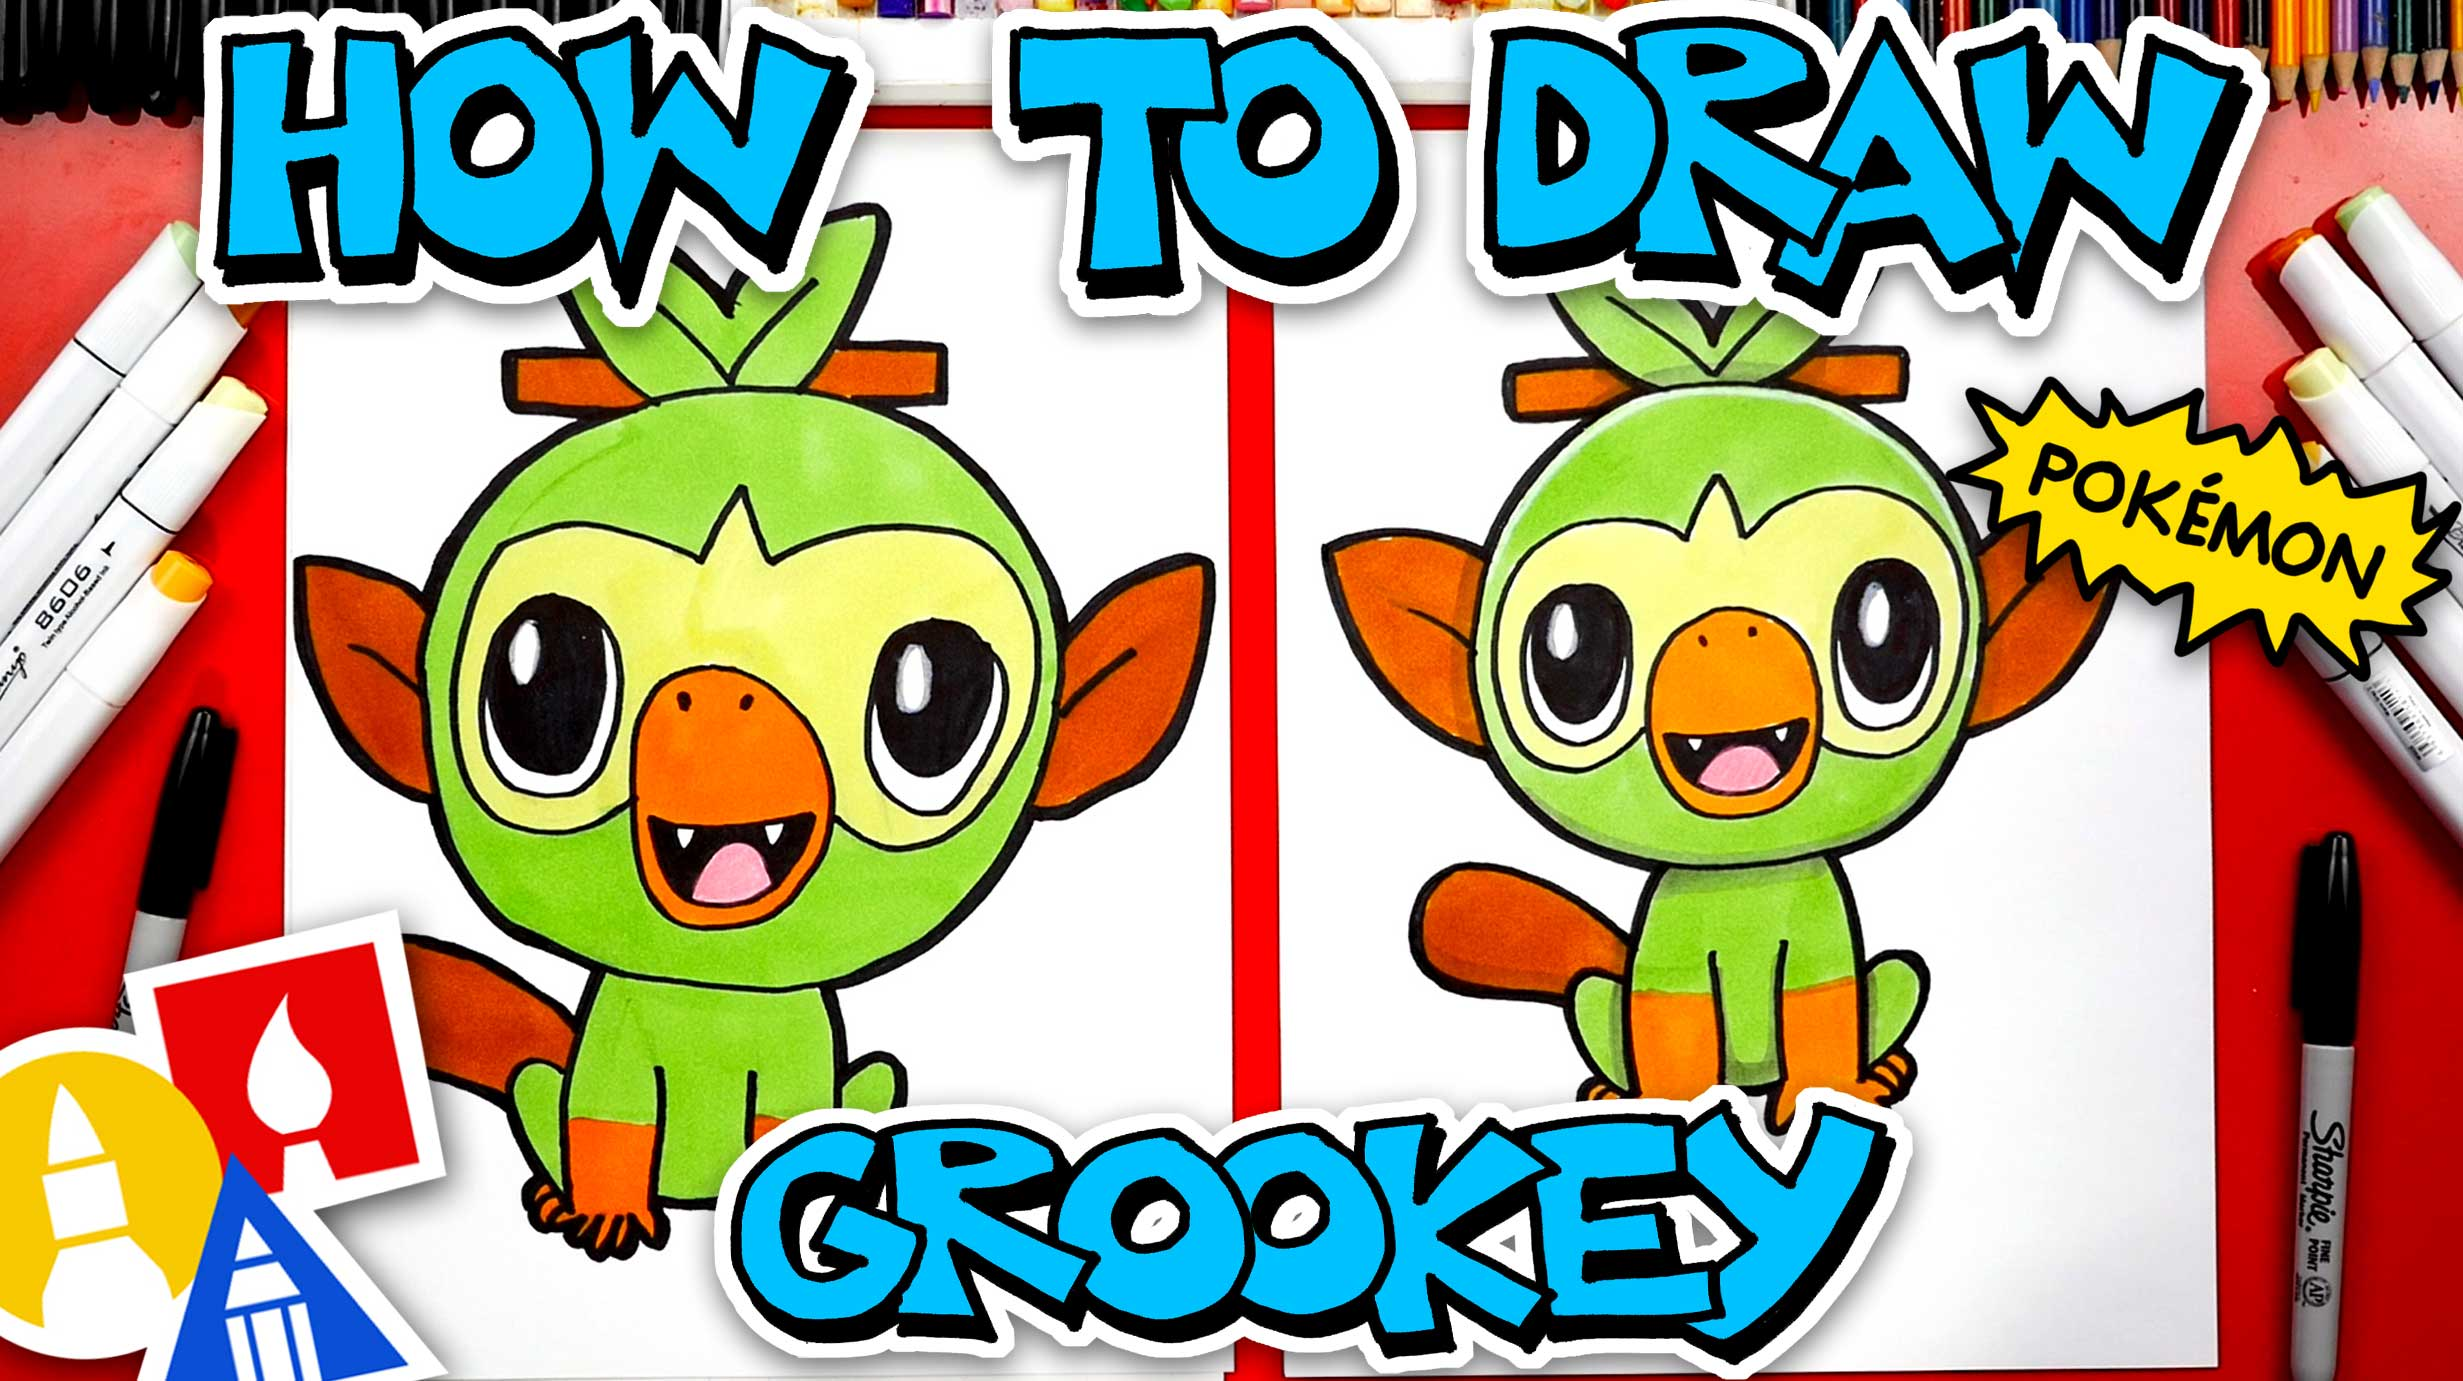 How To Draw Grookey Pokemon From Sword And Shield That's just a description of the pokémon. how to draw grookey pokemon from sword